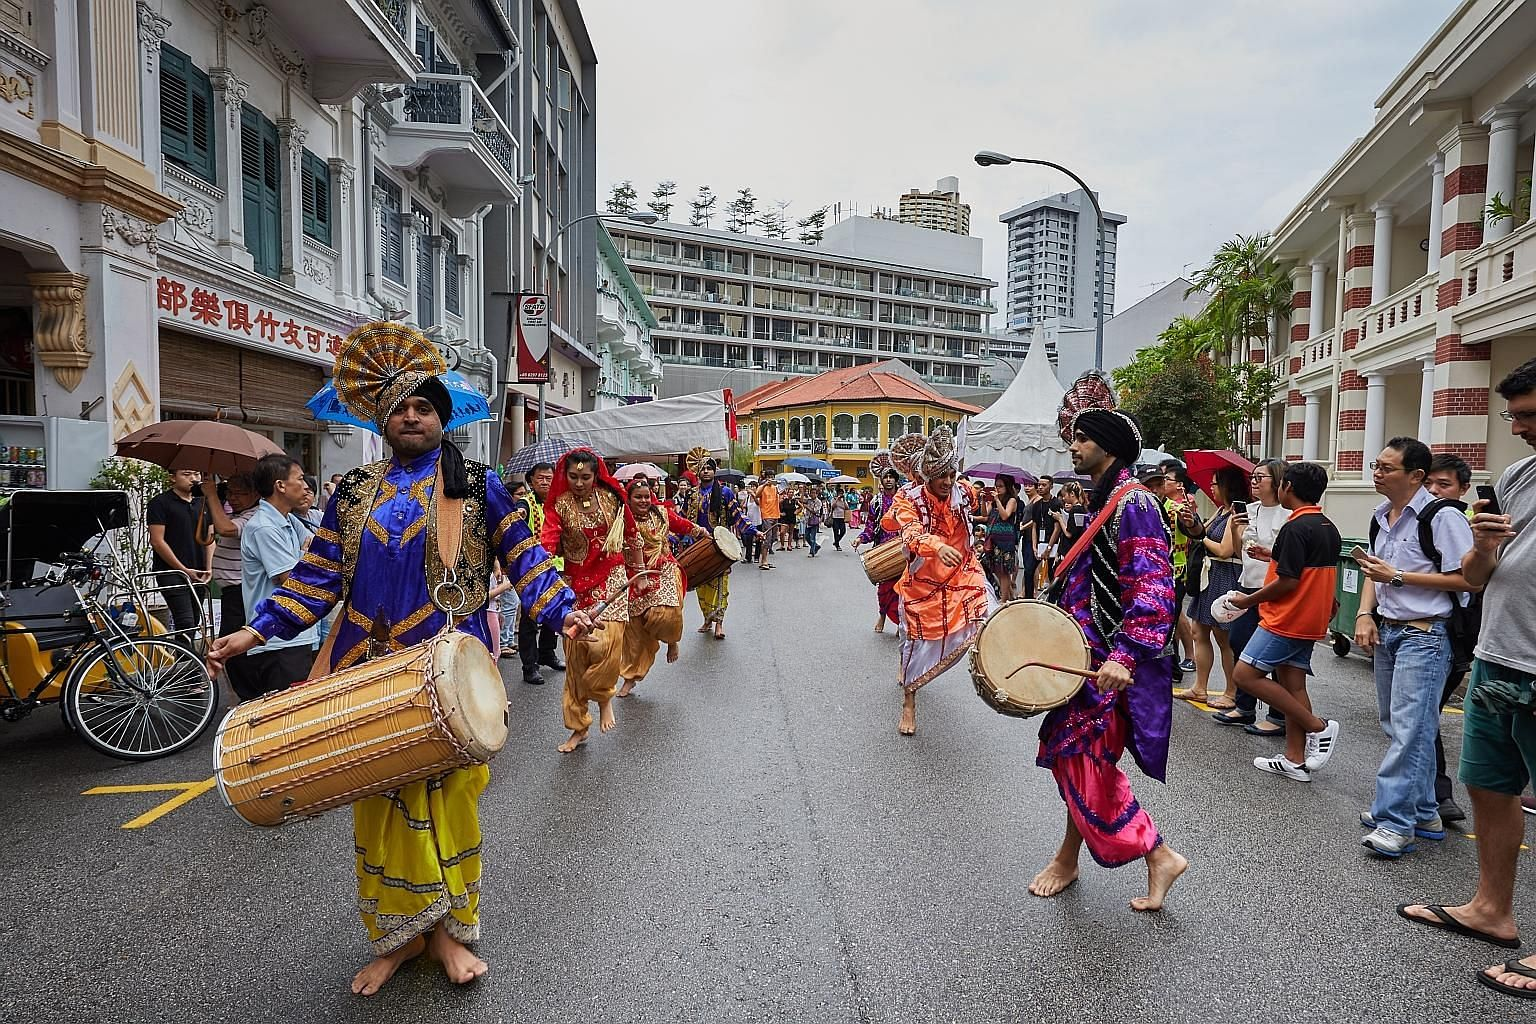 A Bukit Pasoh street party held in conjunction with the Singapore Heritage Festival. The festival is among major free events meant to allow heartlanders who do not go to performance halls to also enjoy arts and cultural events, says Minister for Cult